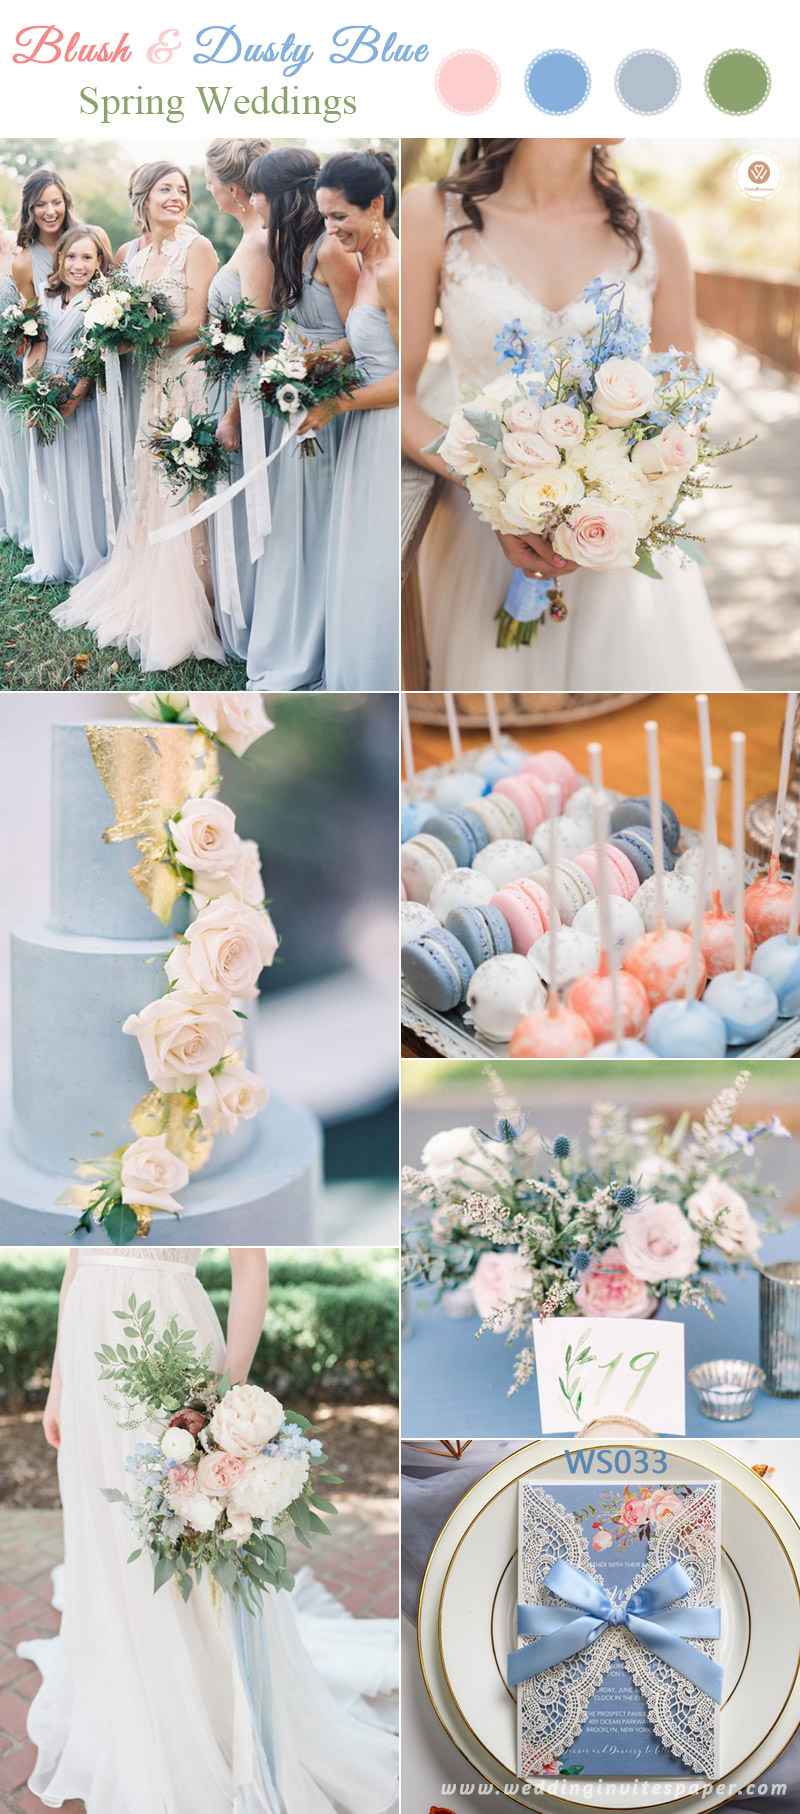 Blush-&-Dusty-Blue-Spring-Weddings--,-Spring-Weddings.jpg